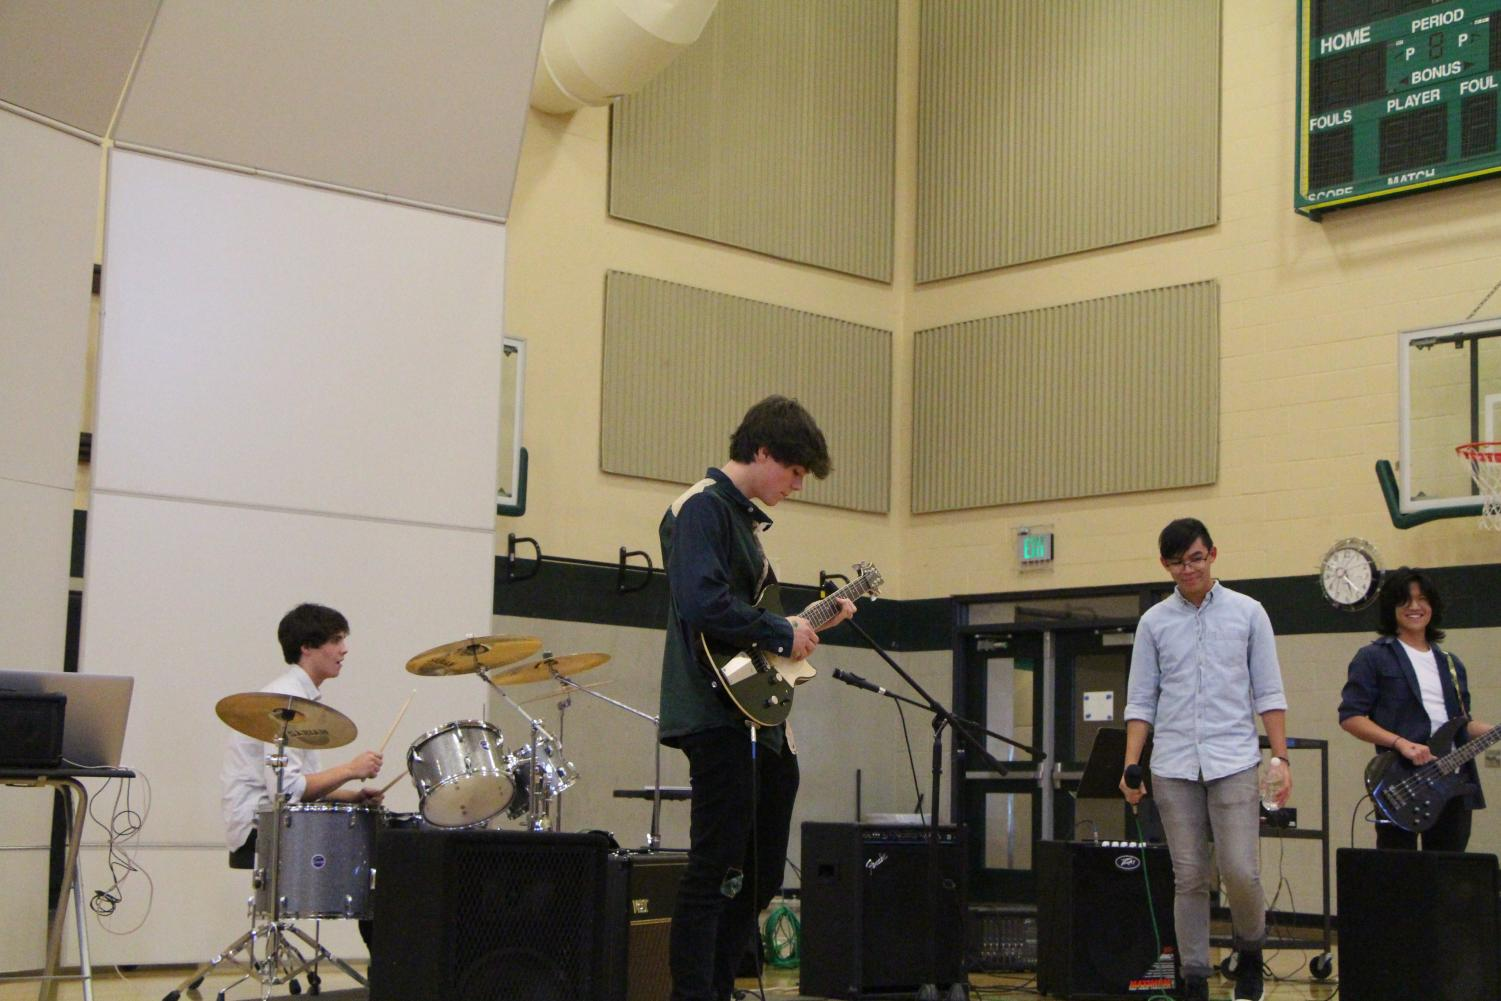 """Peripheral Flow performs covers of """"Island in the Sun"""" by Weezer, """"Someday"""" by the Strokes and more. The band features juniors Jackson Monahan, Daniel Monahan, Matt Chao and Wilfred Lim."""